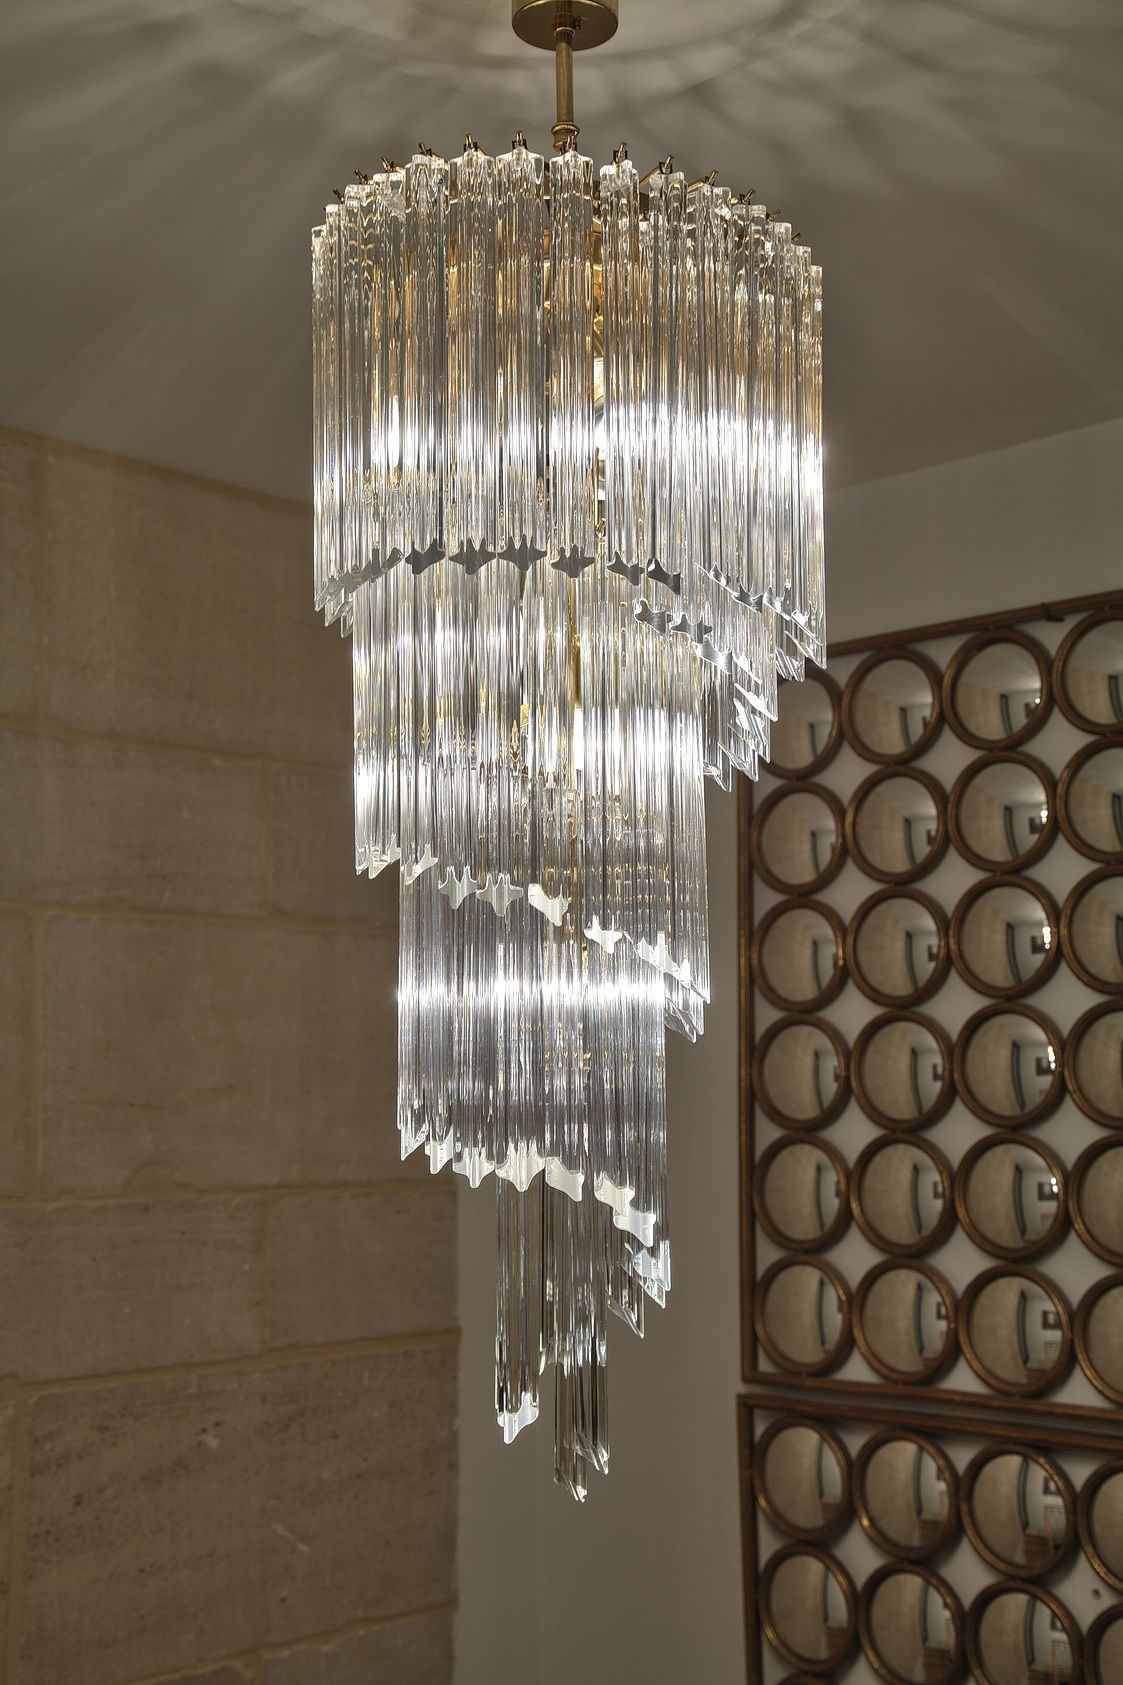 Tripod Lampstand Simulating Street Lamp Stand Crystal Chandelier